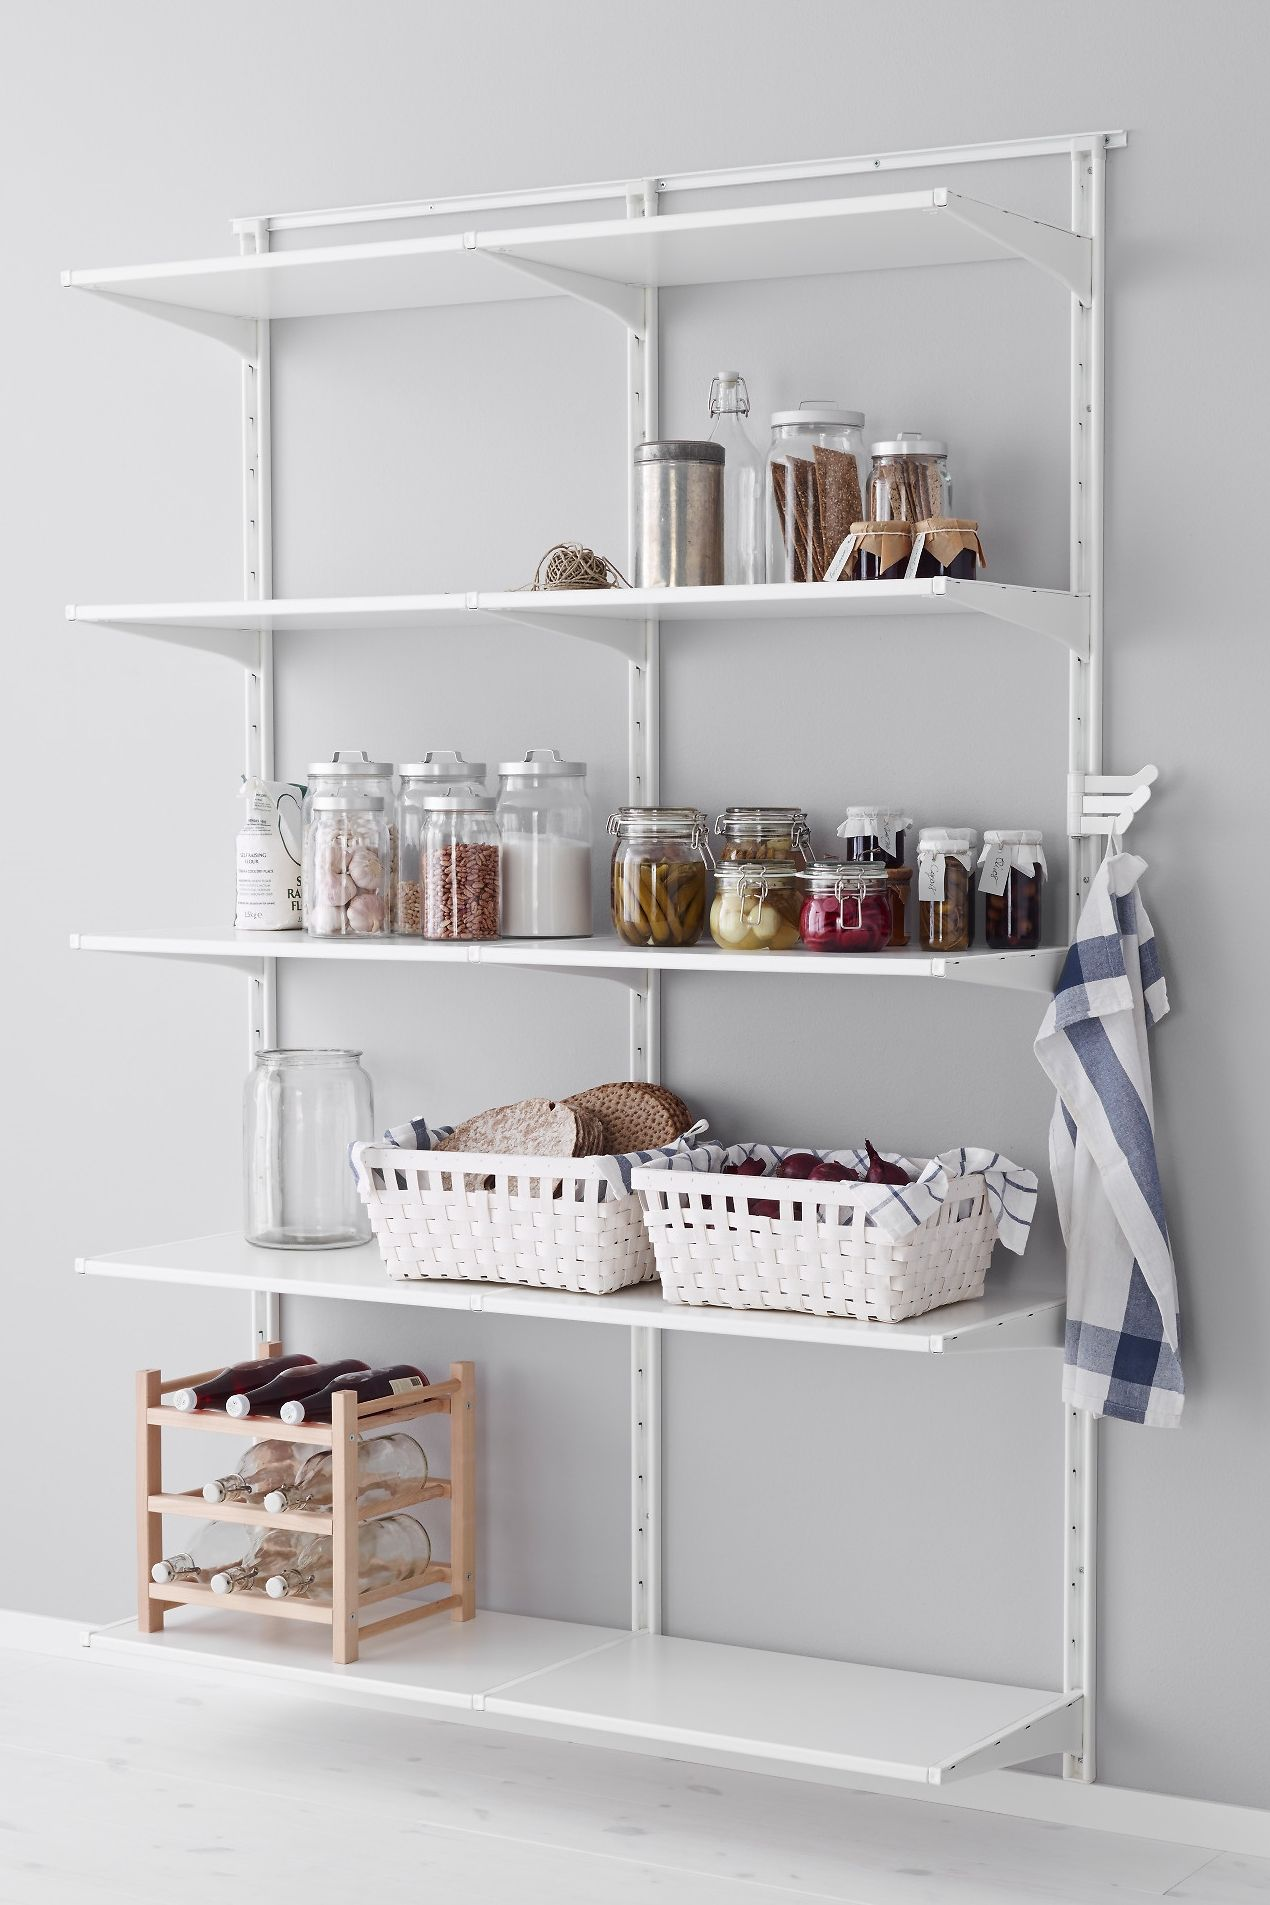 Ikea Algot Küche Create A Custom Pantry In Your Kitchen With Ikea Shelving The